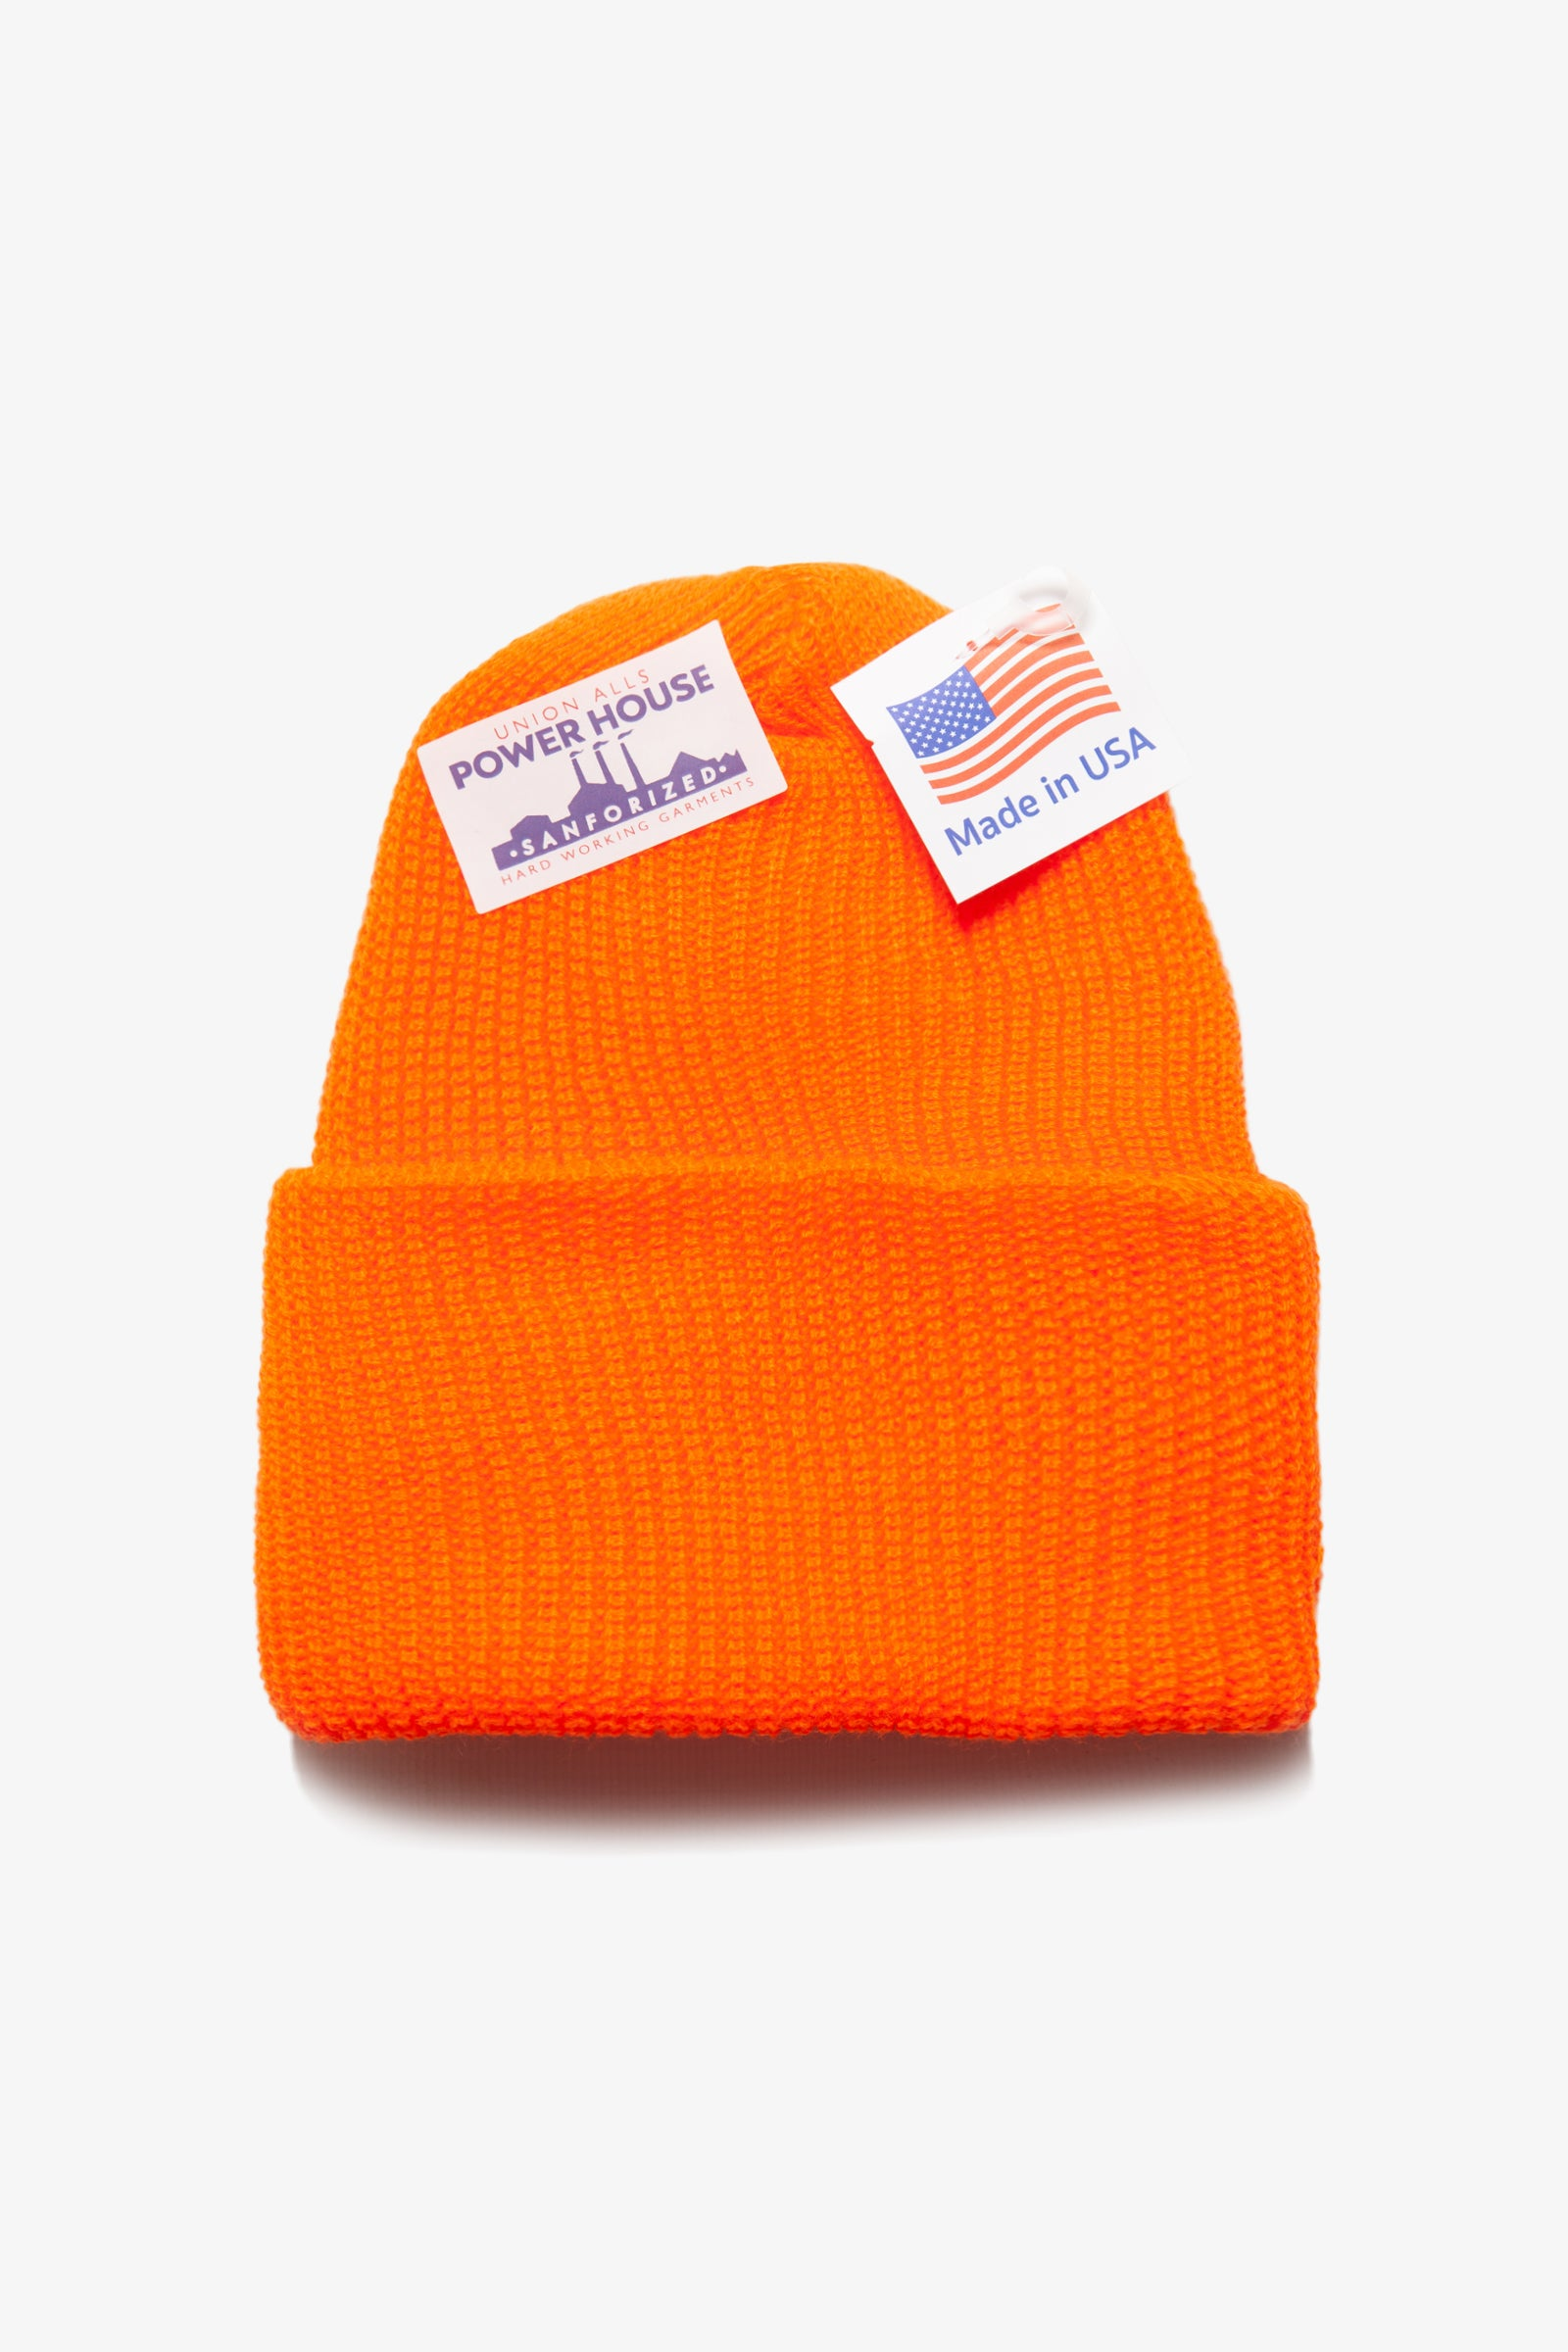 Power House - Watch Cap Beanie - Blaze Orange